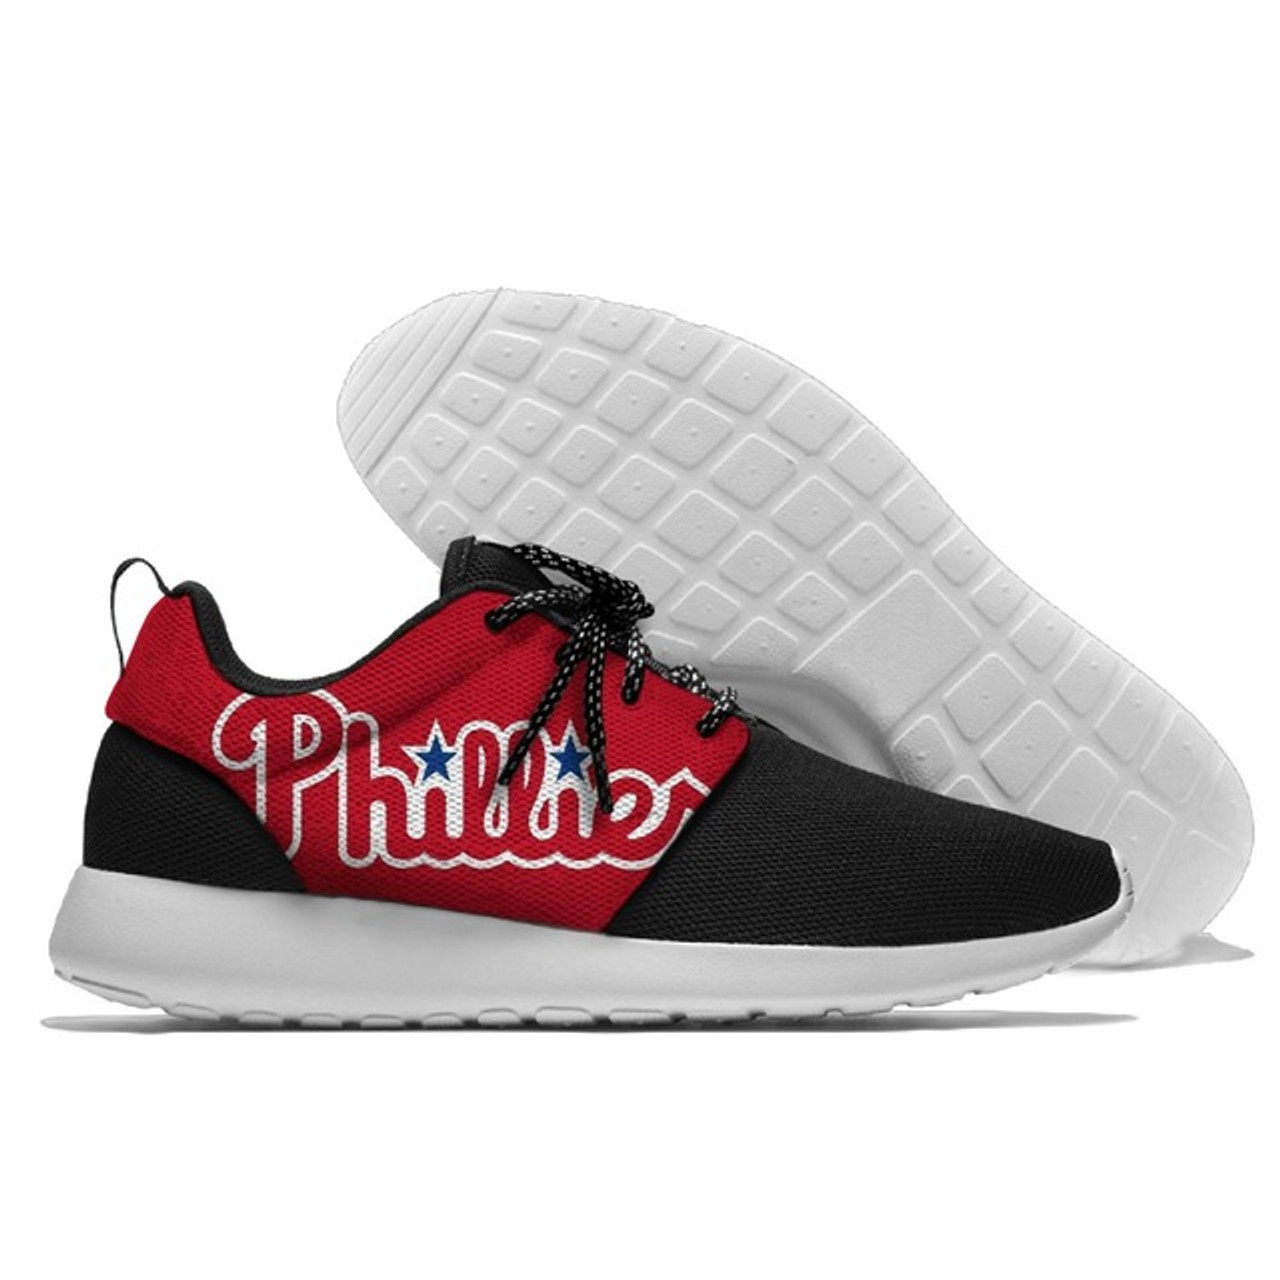 **(OFFICIAL-LICENSED-M.L.B.SAN-PHILADELPHIA-PHILLIES-RUNNING-SHOES,MENS-OR-WOMENS-ROSHE-STYLE,LIGHT-WEIGHT-SPORT-PREMIUM-RUNNING-SHOES/WITH-OFFICIAL-PHILLIES-TEAM-COLORS & PHILLIES-TEAM-LOGOS,SPECIAL-CUSHIONED-COMFORT-INSOLES/COMES-IN-ALL-SIZES)**